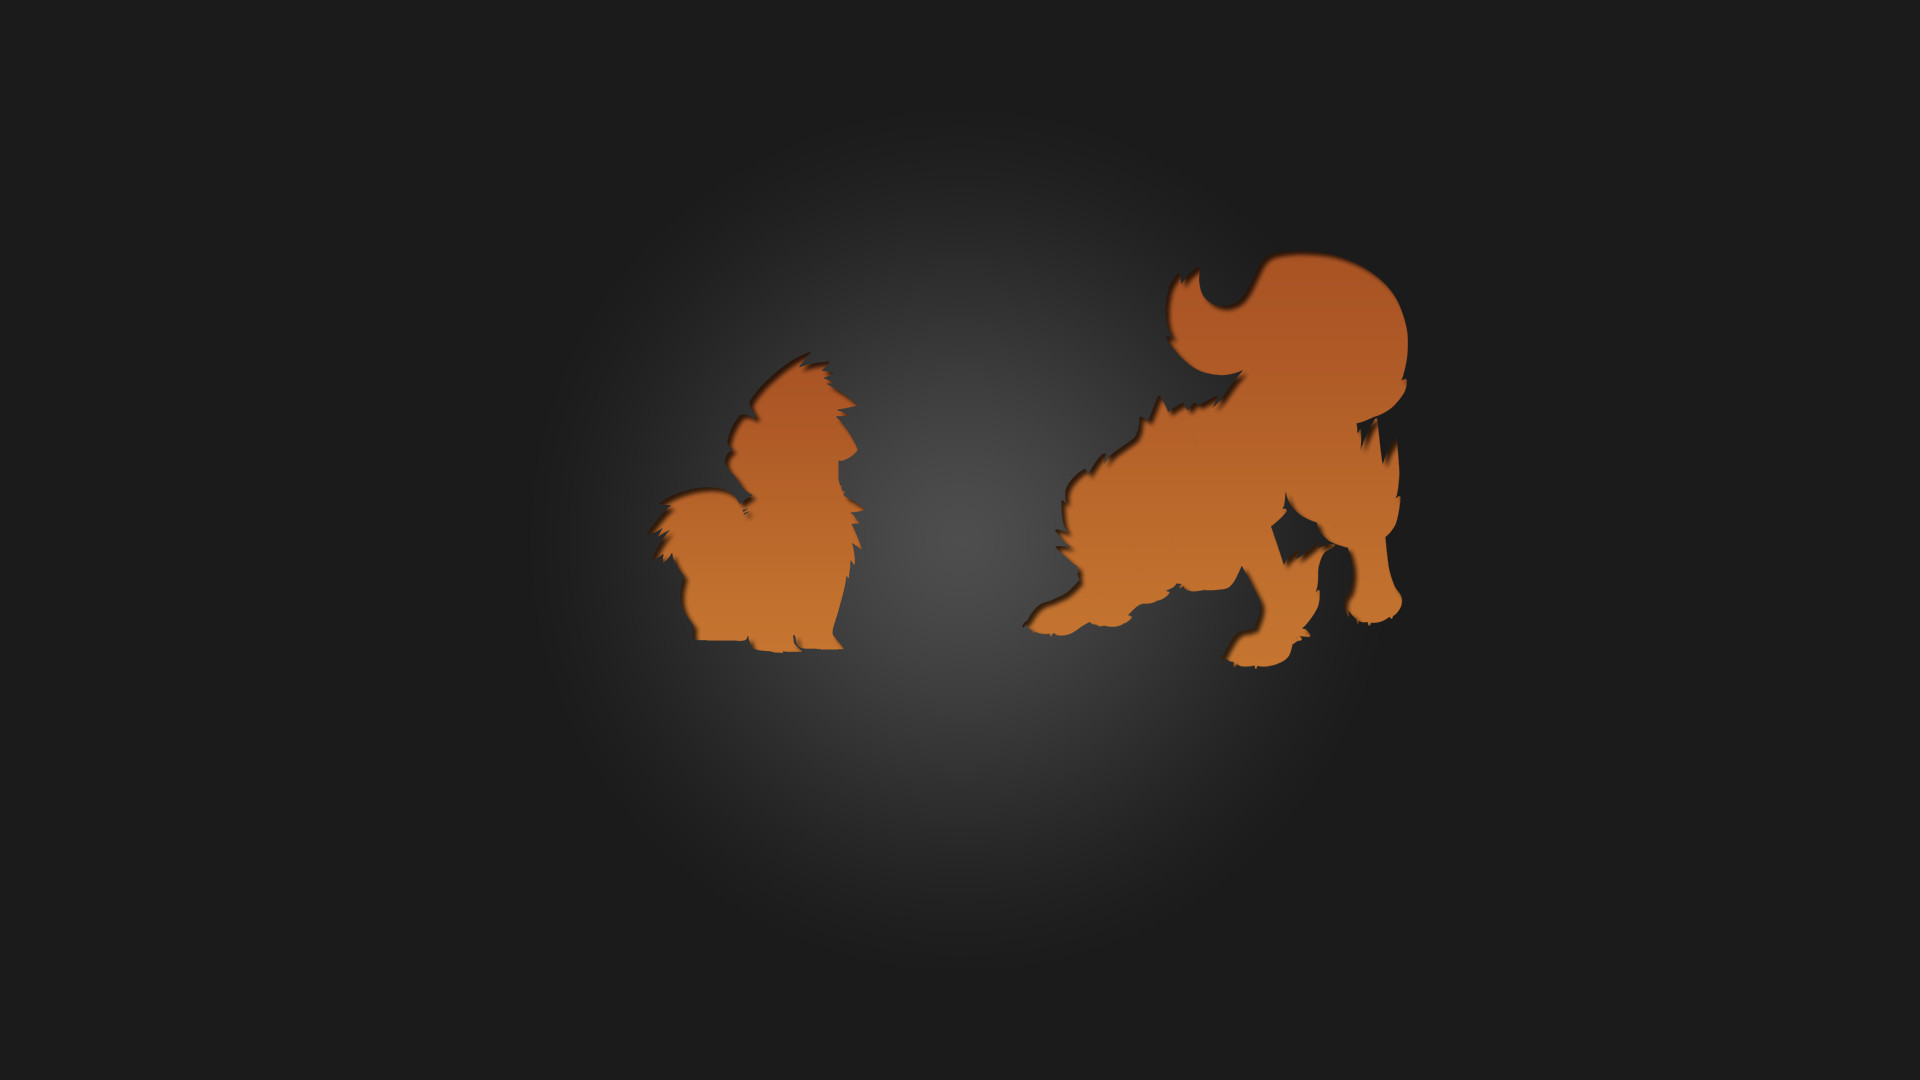 1920x1080 cyndaquil black background - photo #11